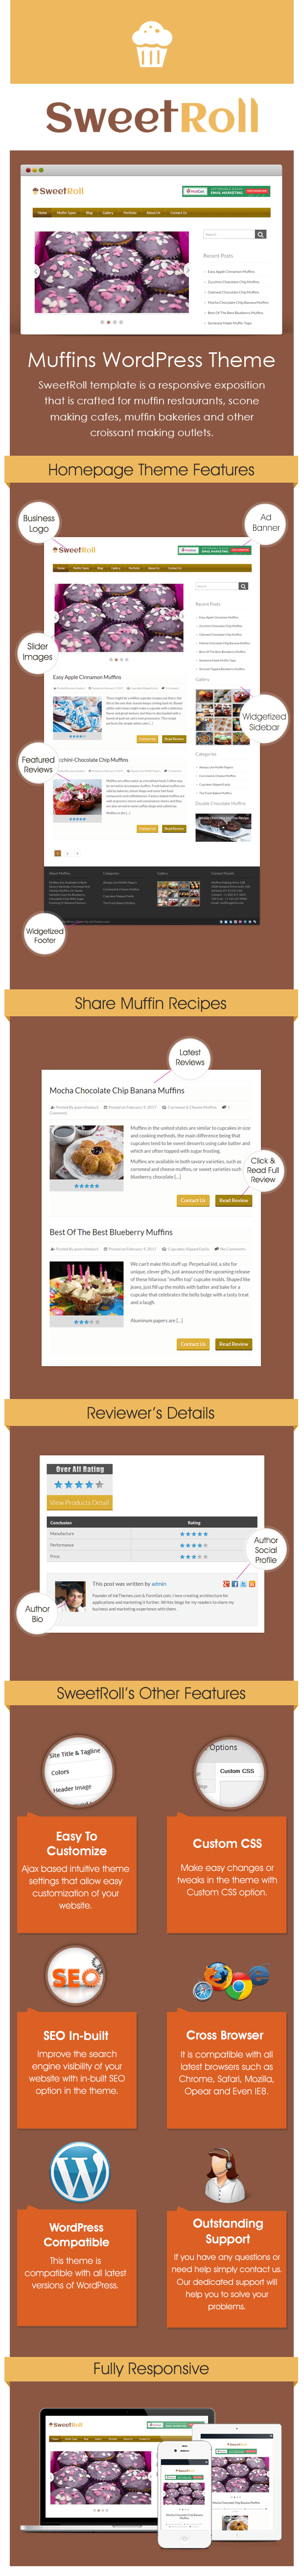 Muffins WordPress Theme